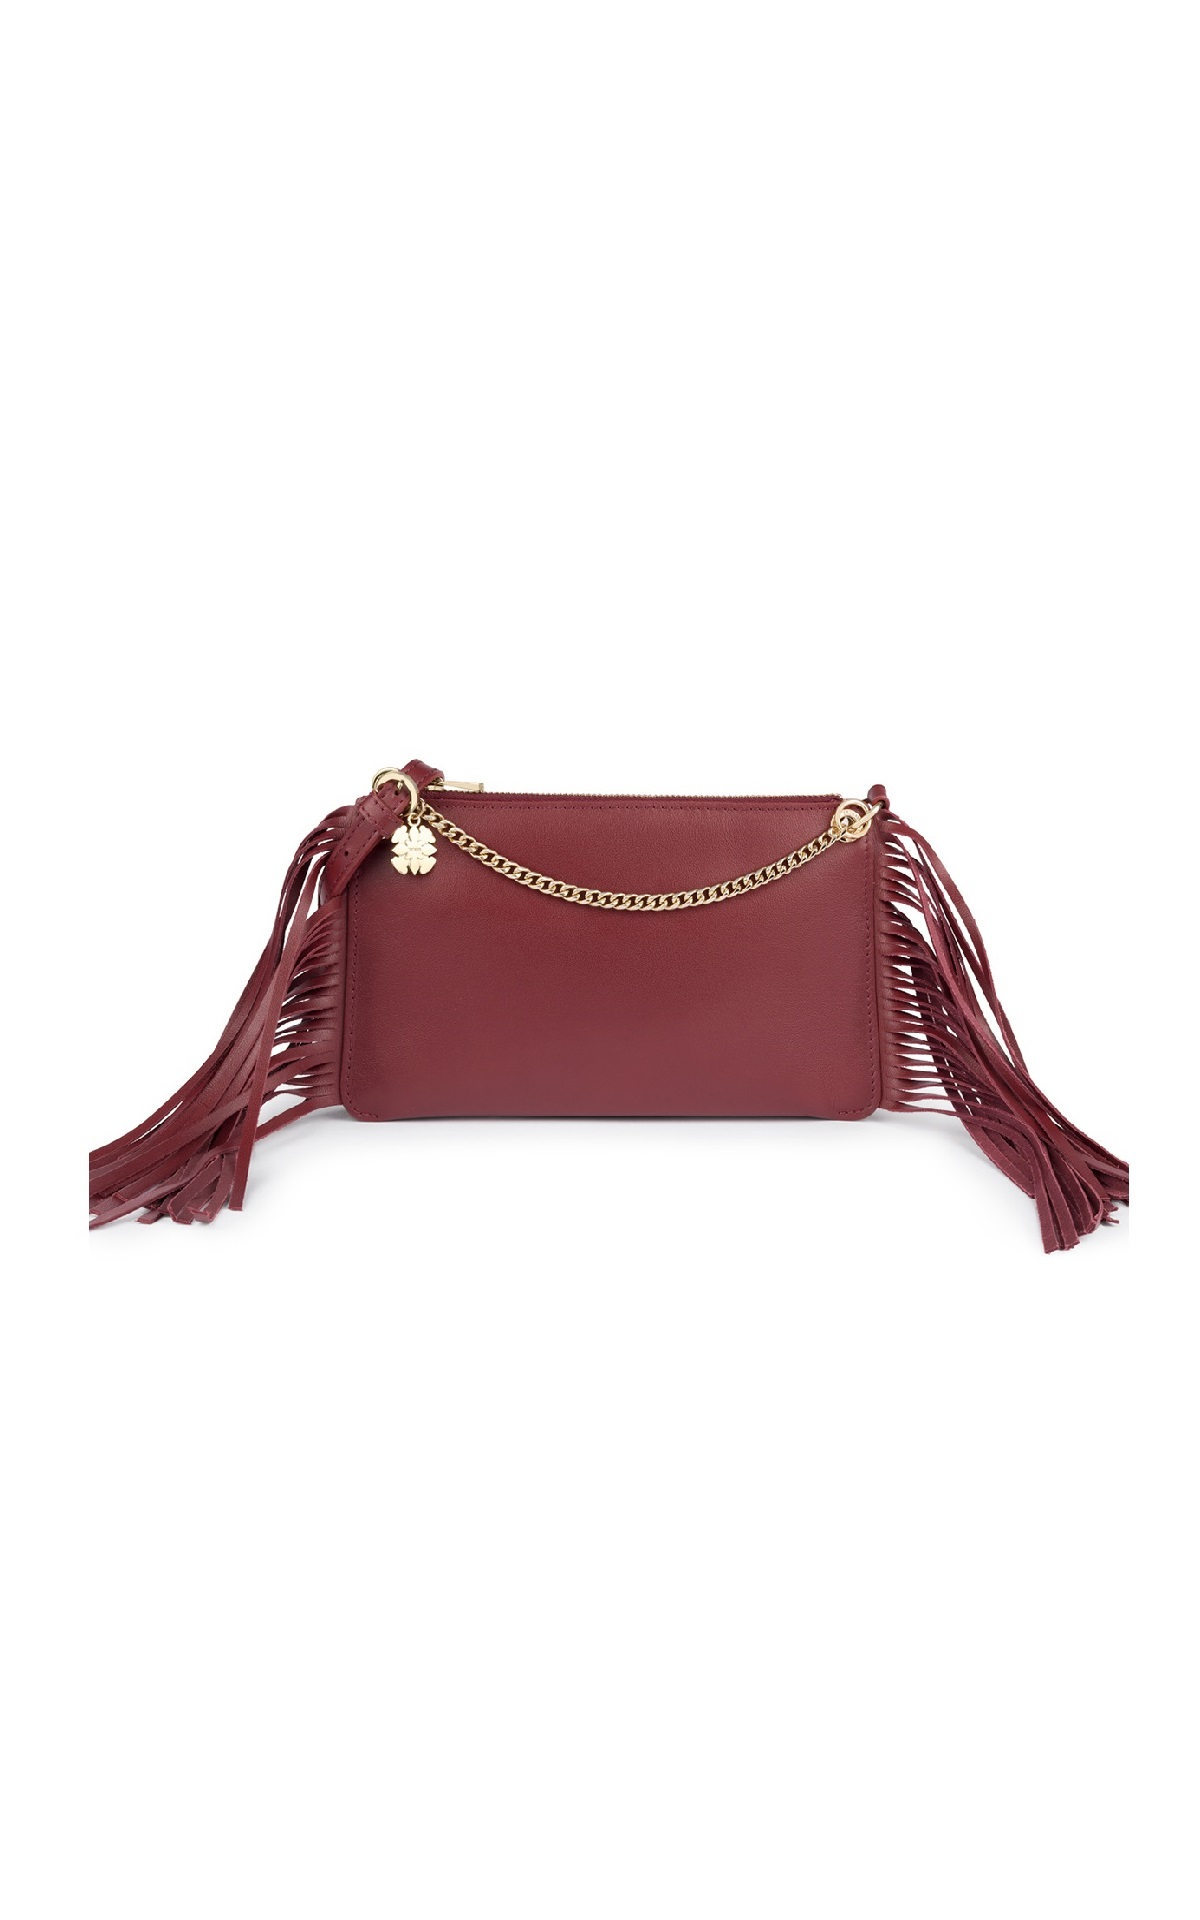 Burgundy bag with fringes Tous